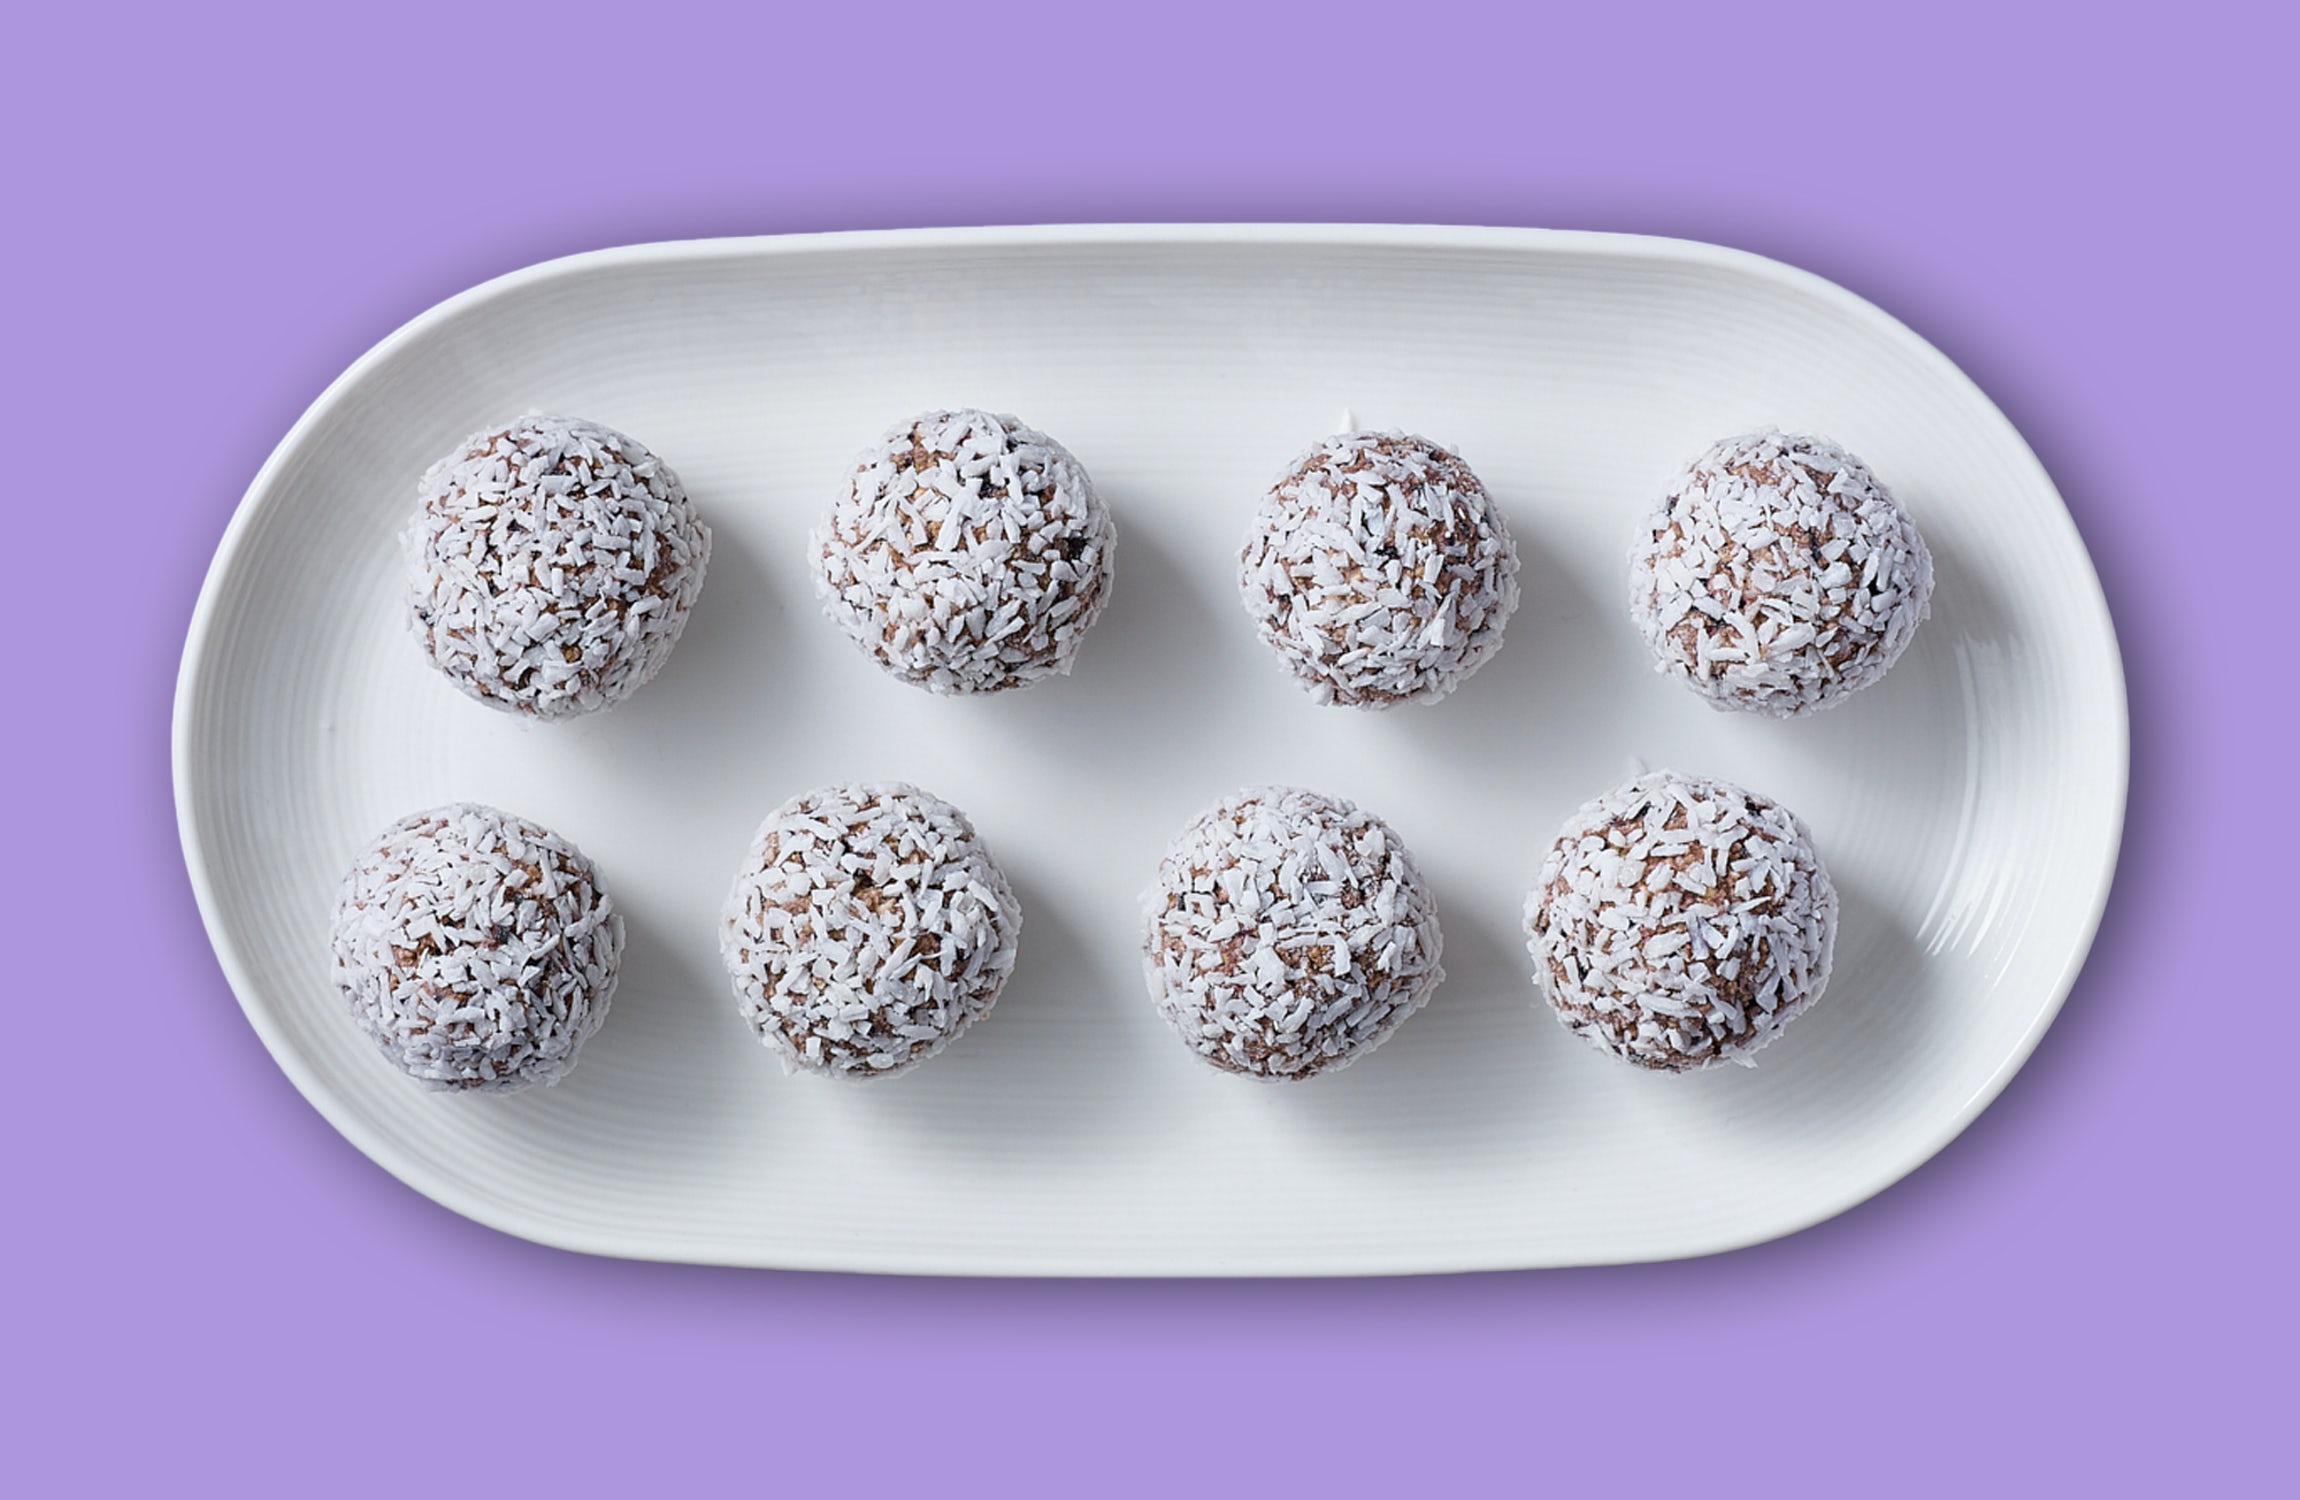 Blueberry Muffin Health Balls